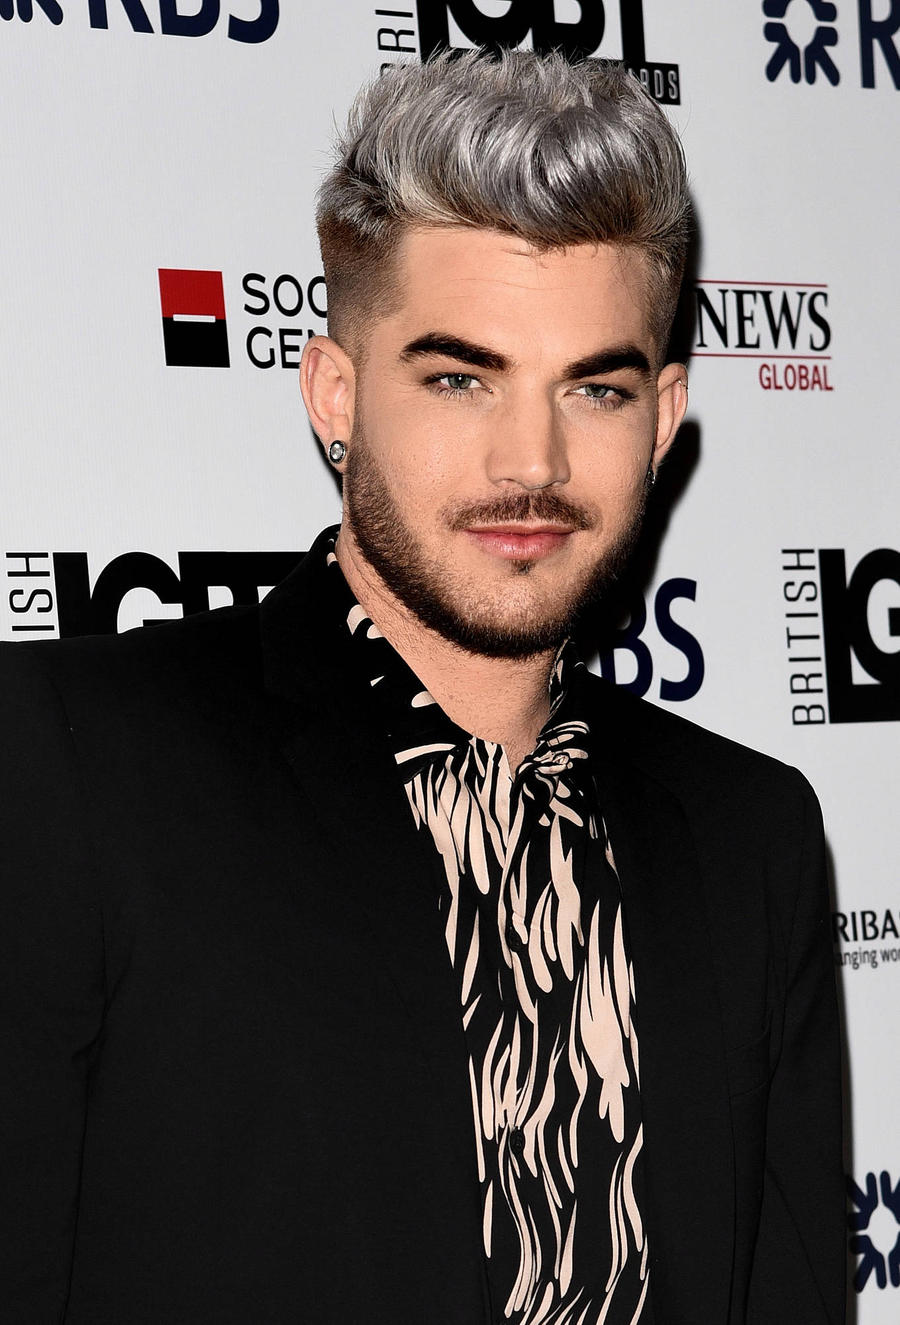 Adam Lambert Joins The X Factor Australia